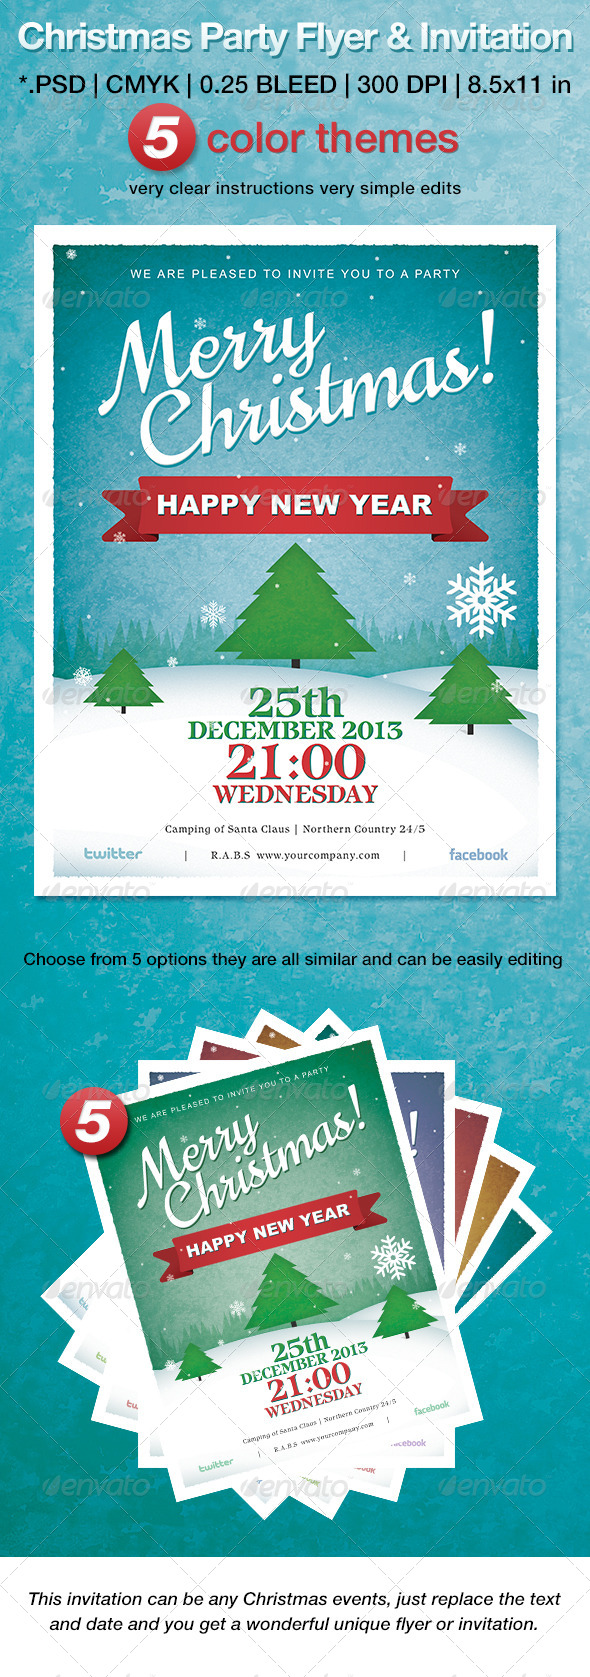 GraphicRiver Christmas Party Flyer & Invitation 6464098